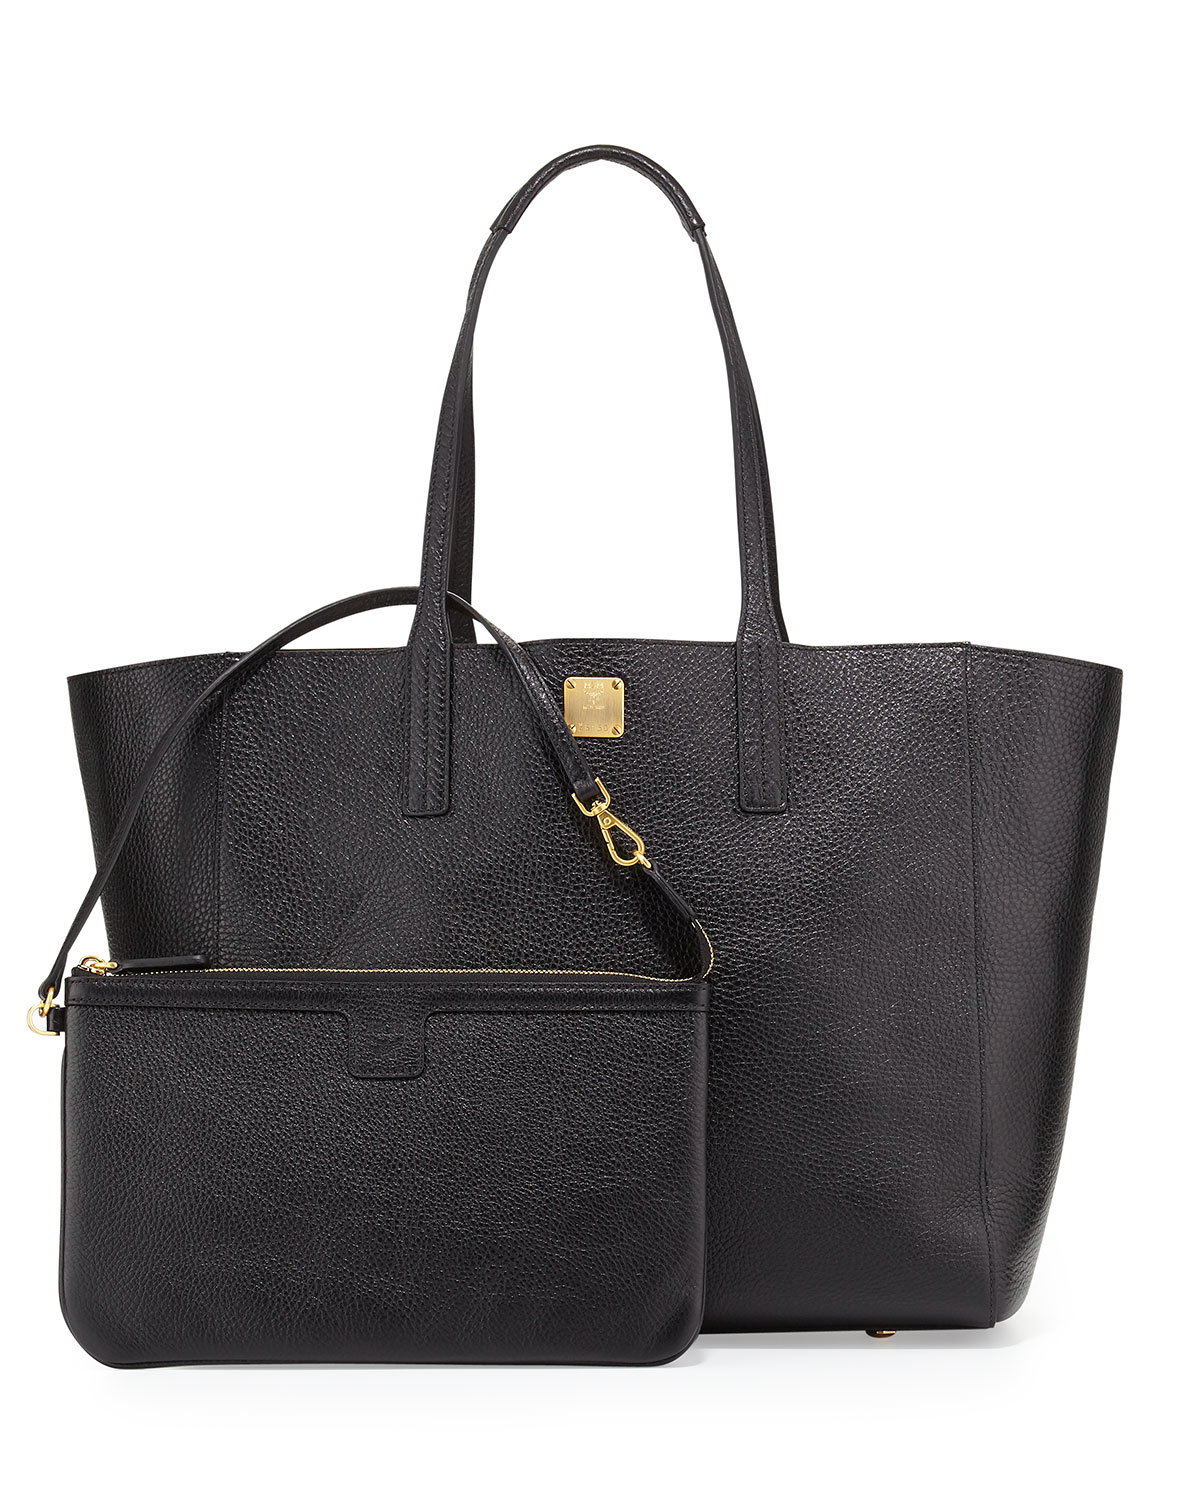 Mcm Shopper Project Reversible Leather Tote Bag In Black